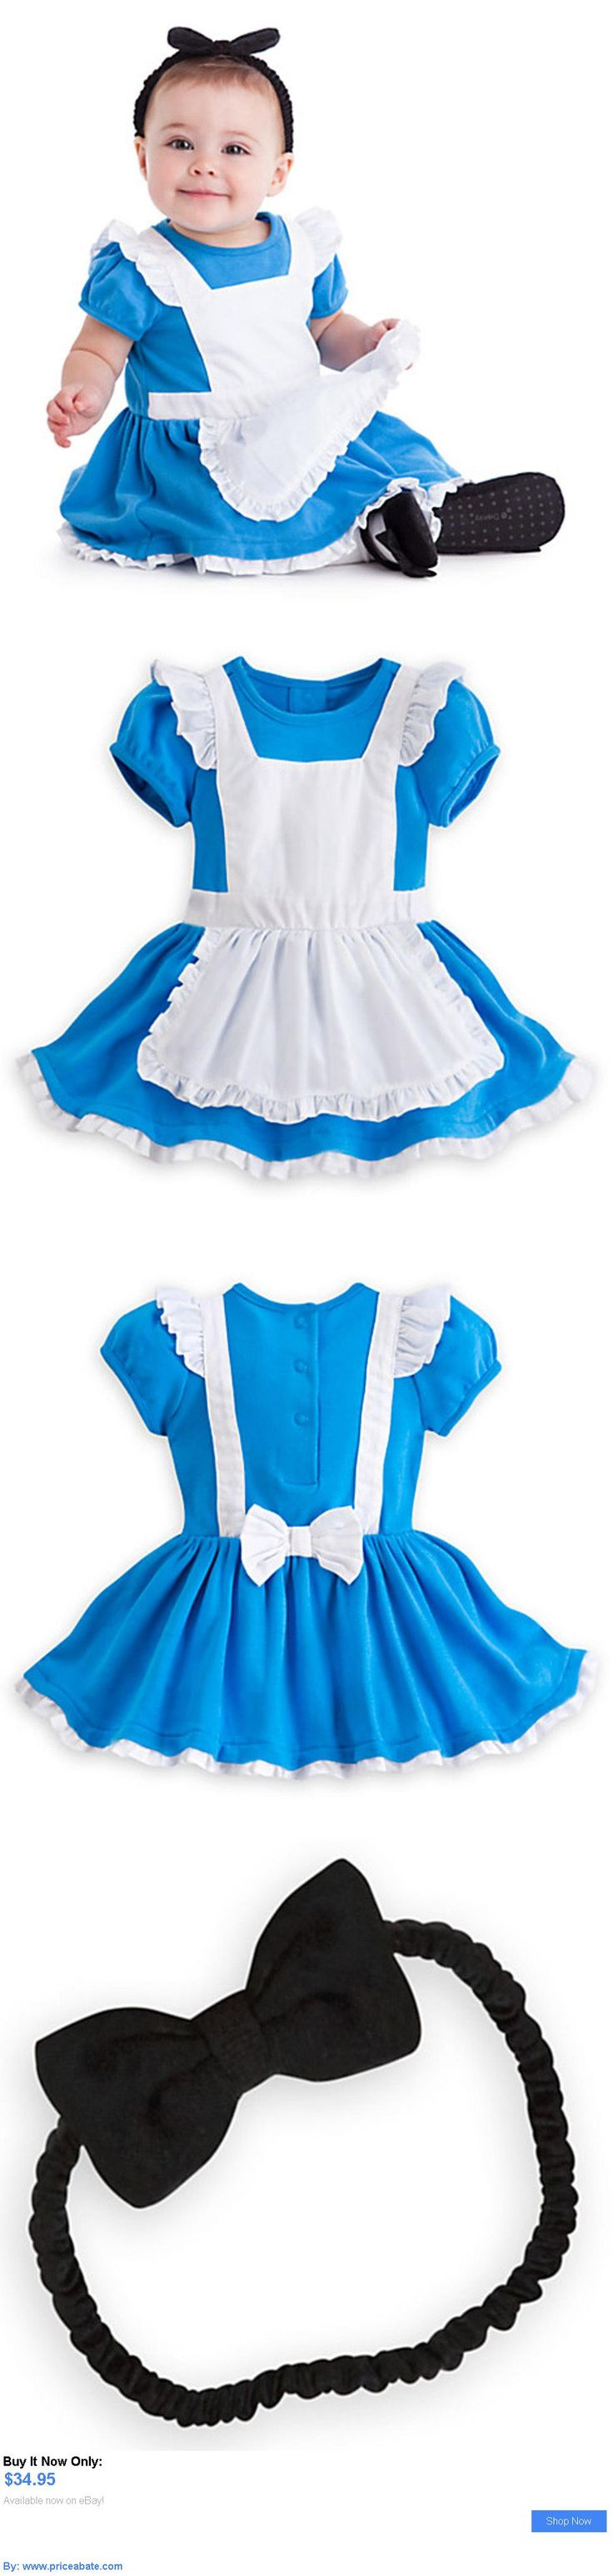 Best 25+ Disney store costumes ideas on Pinterest | Costumes for ...